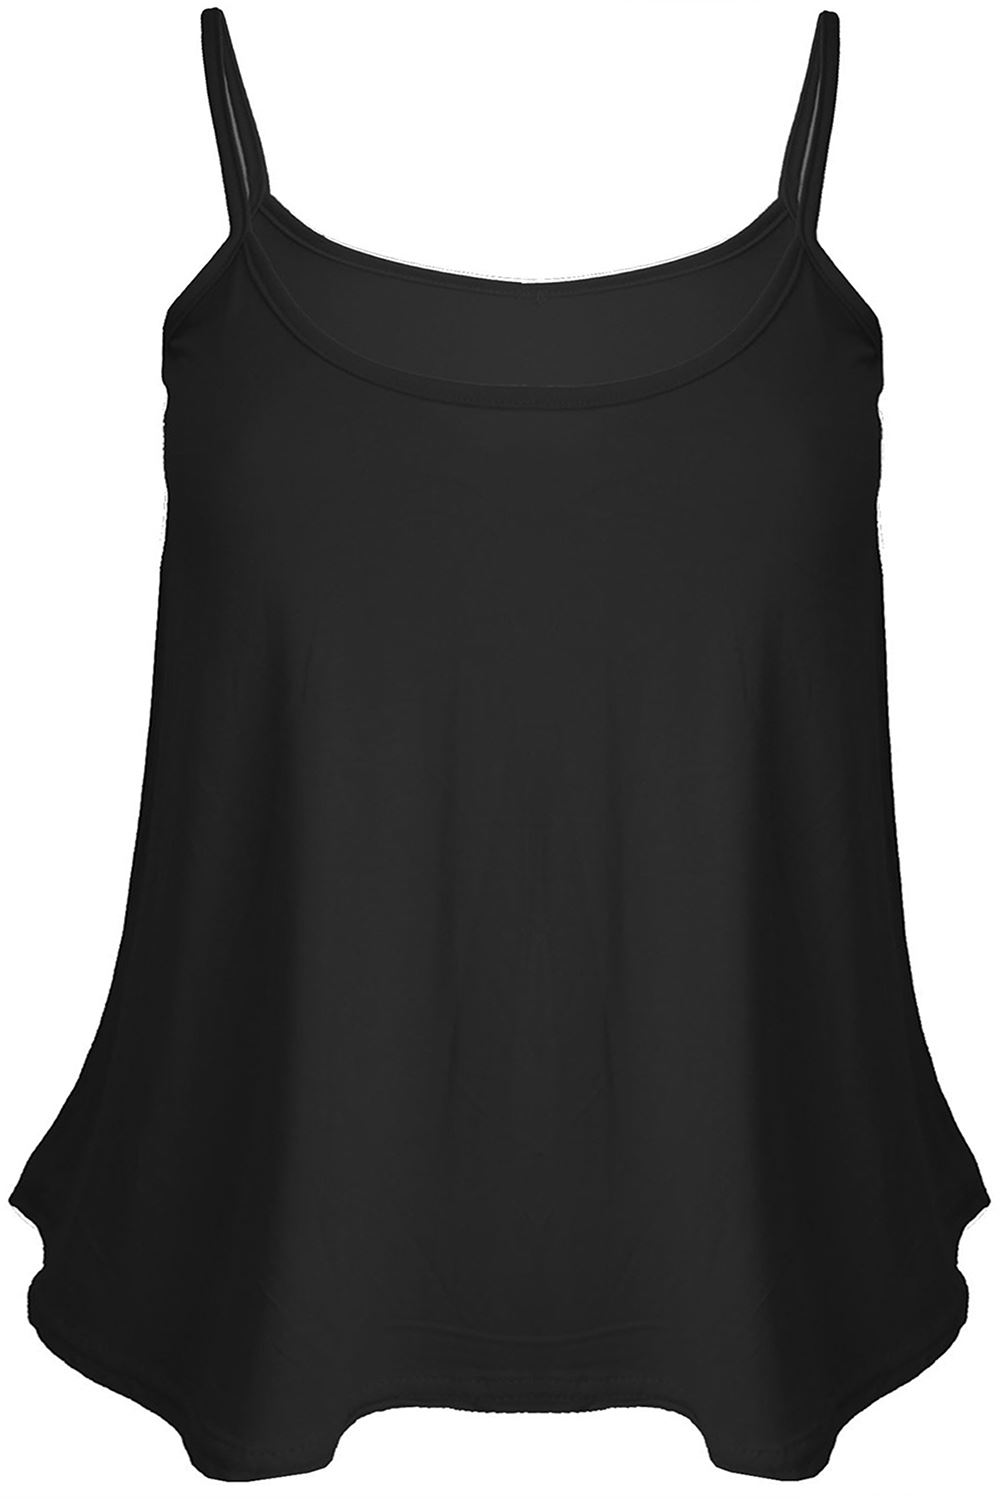 Ladies Women Plus Size New Camisole Cami Plain Printed Strappy Swing Vest Top Flared Sleeveless